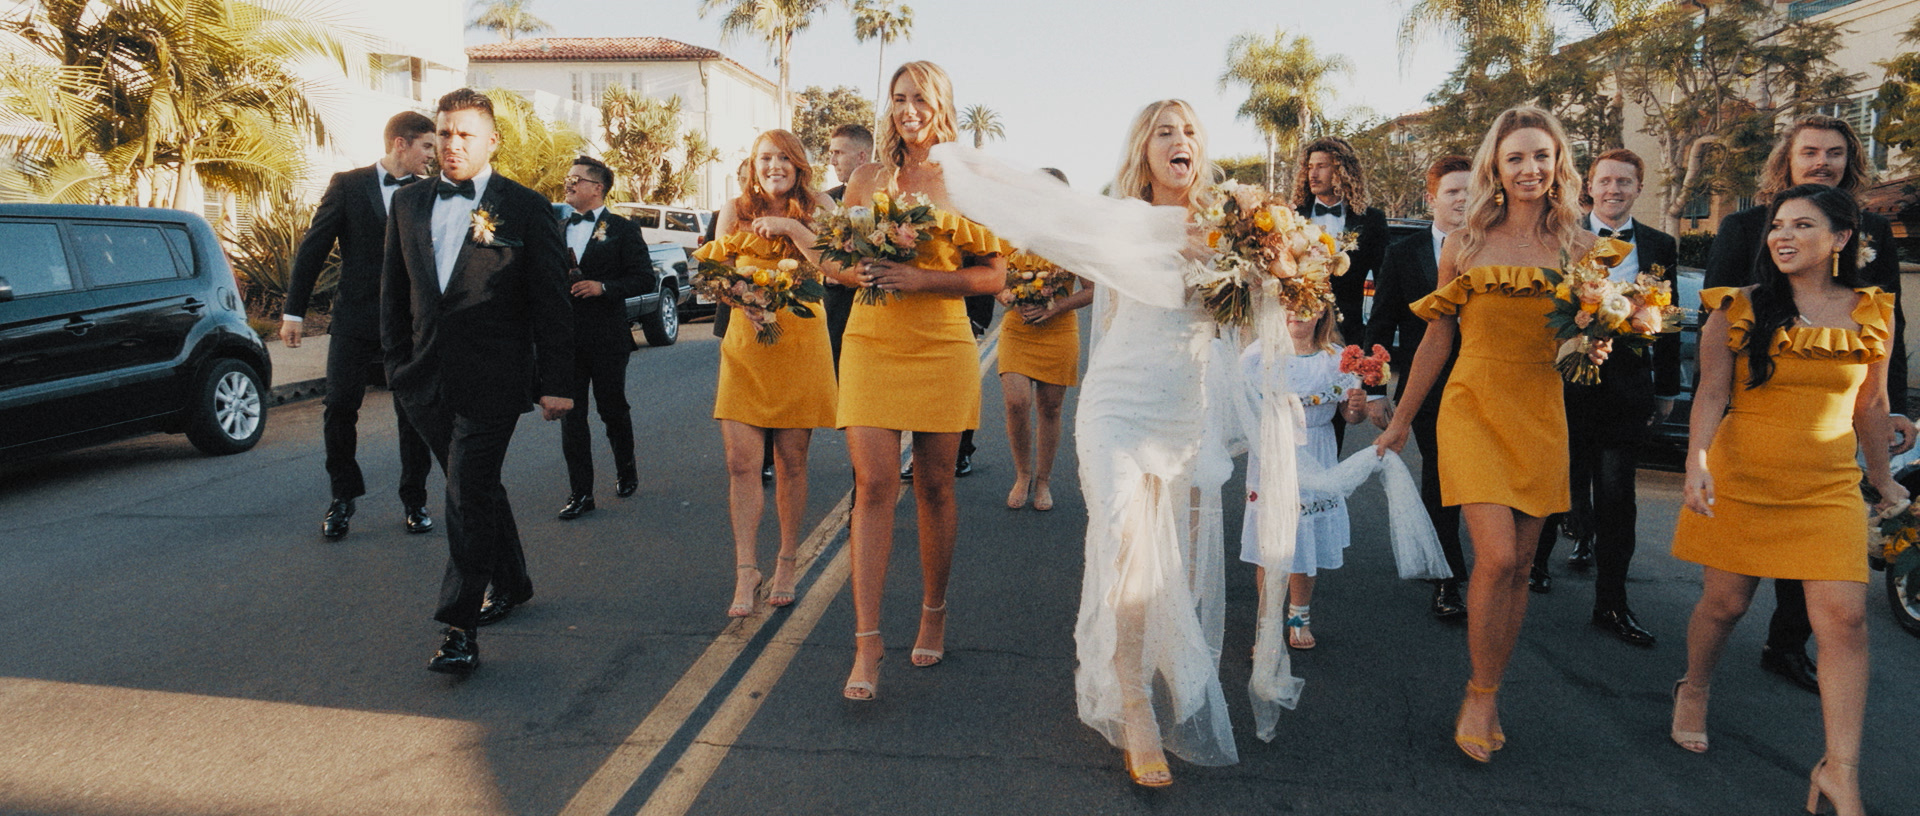 Bree Brock S Seaside San Diego Wedding Featured On Green Wedding